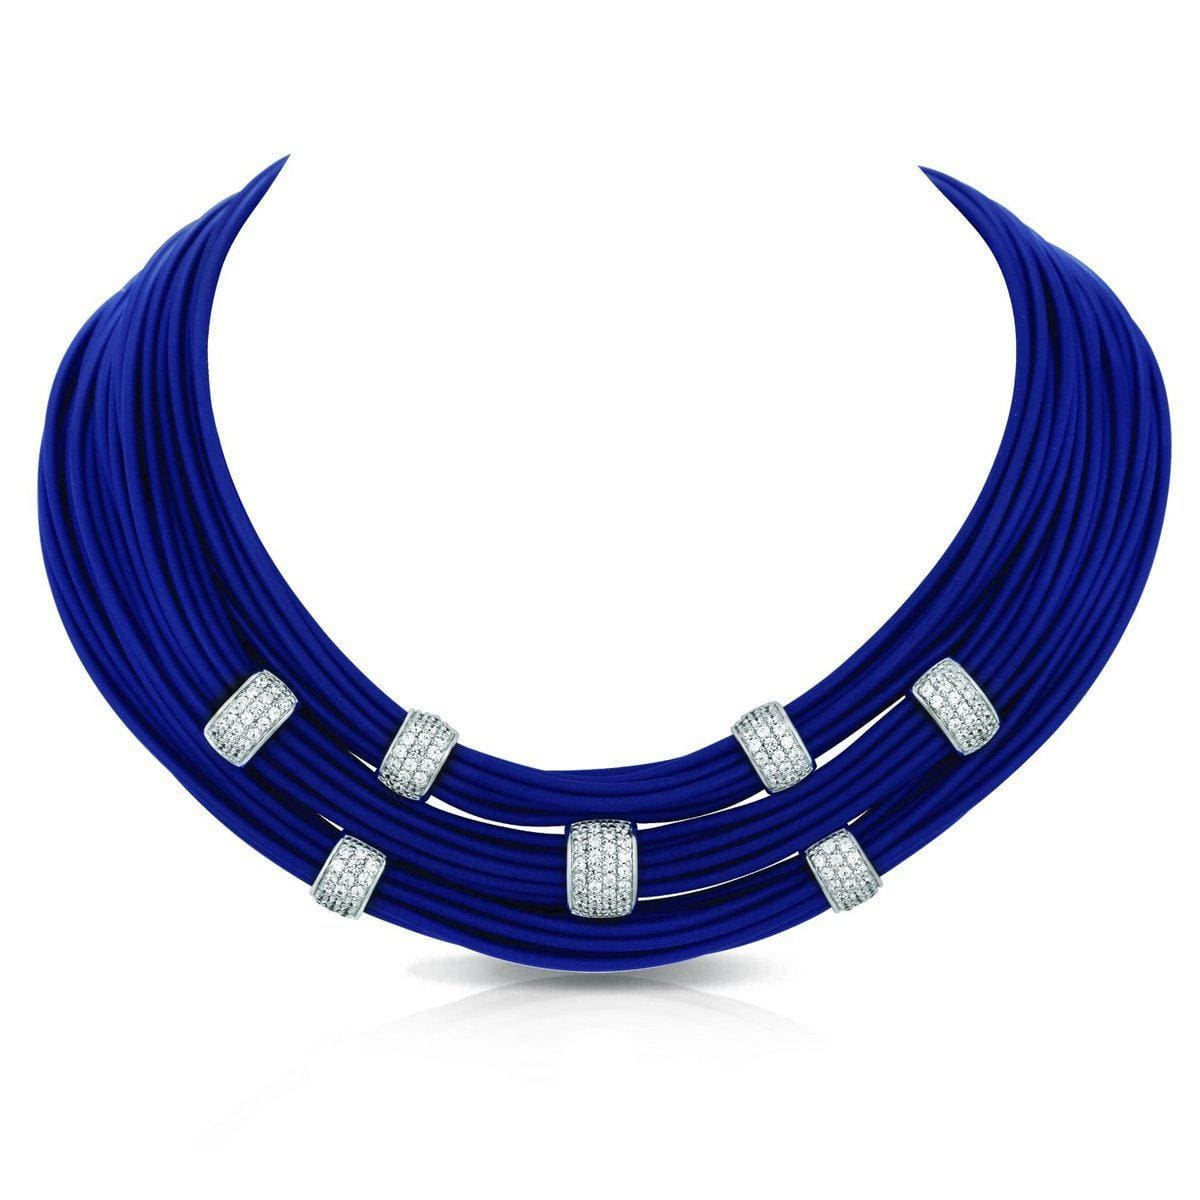 Legato Blue Necklace-Belle Etoile-Renee Taylor Gallery